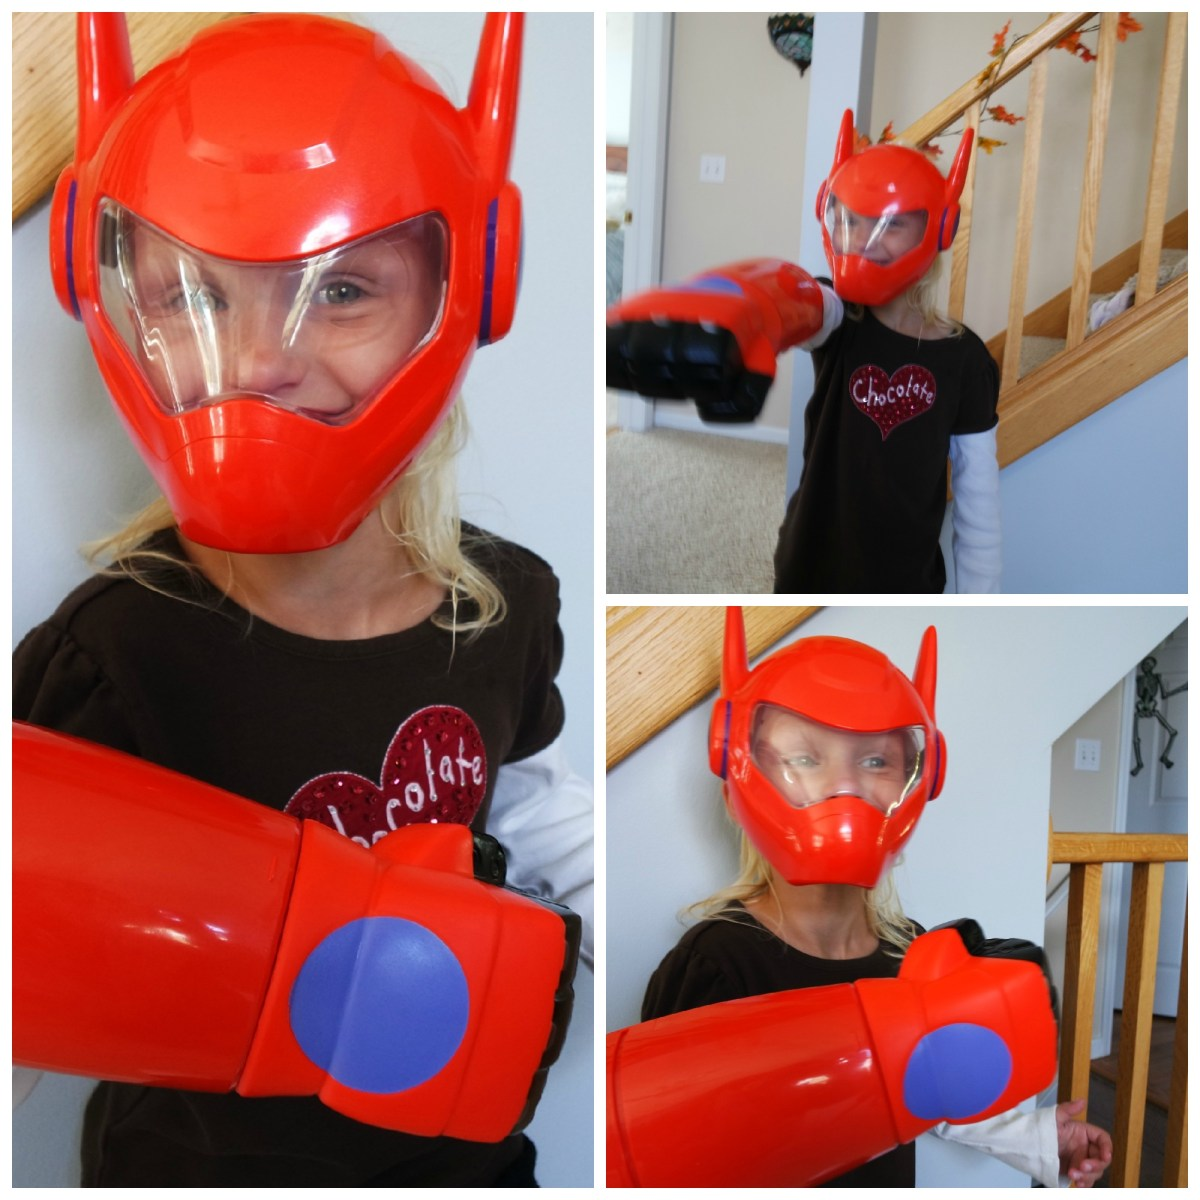 Big Hero 6 Toys Are Fun For All Ages #BigHero6 #giveaway